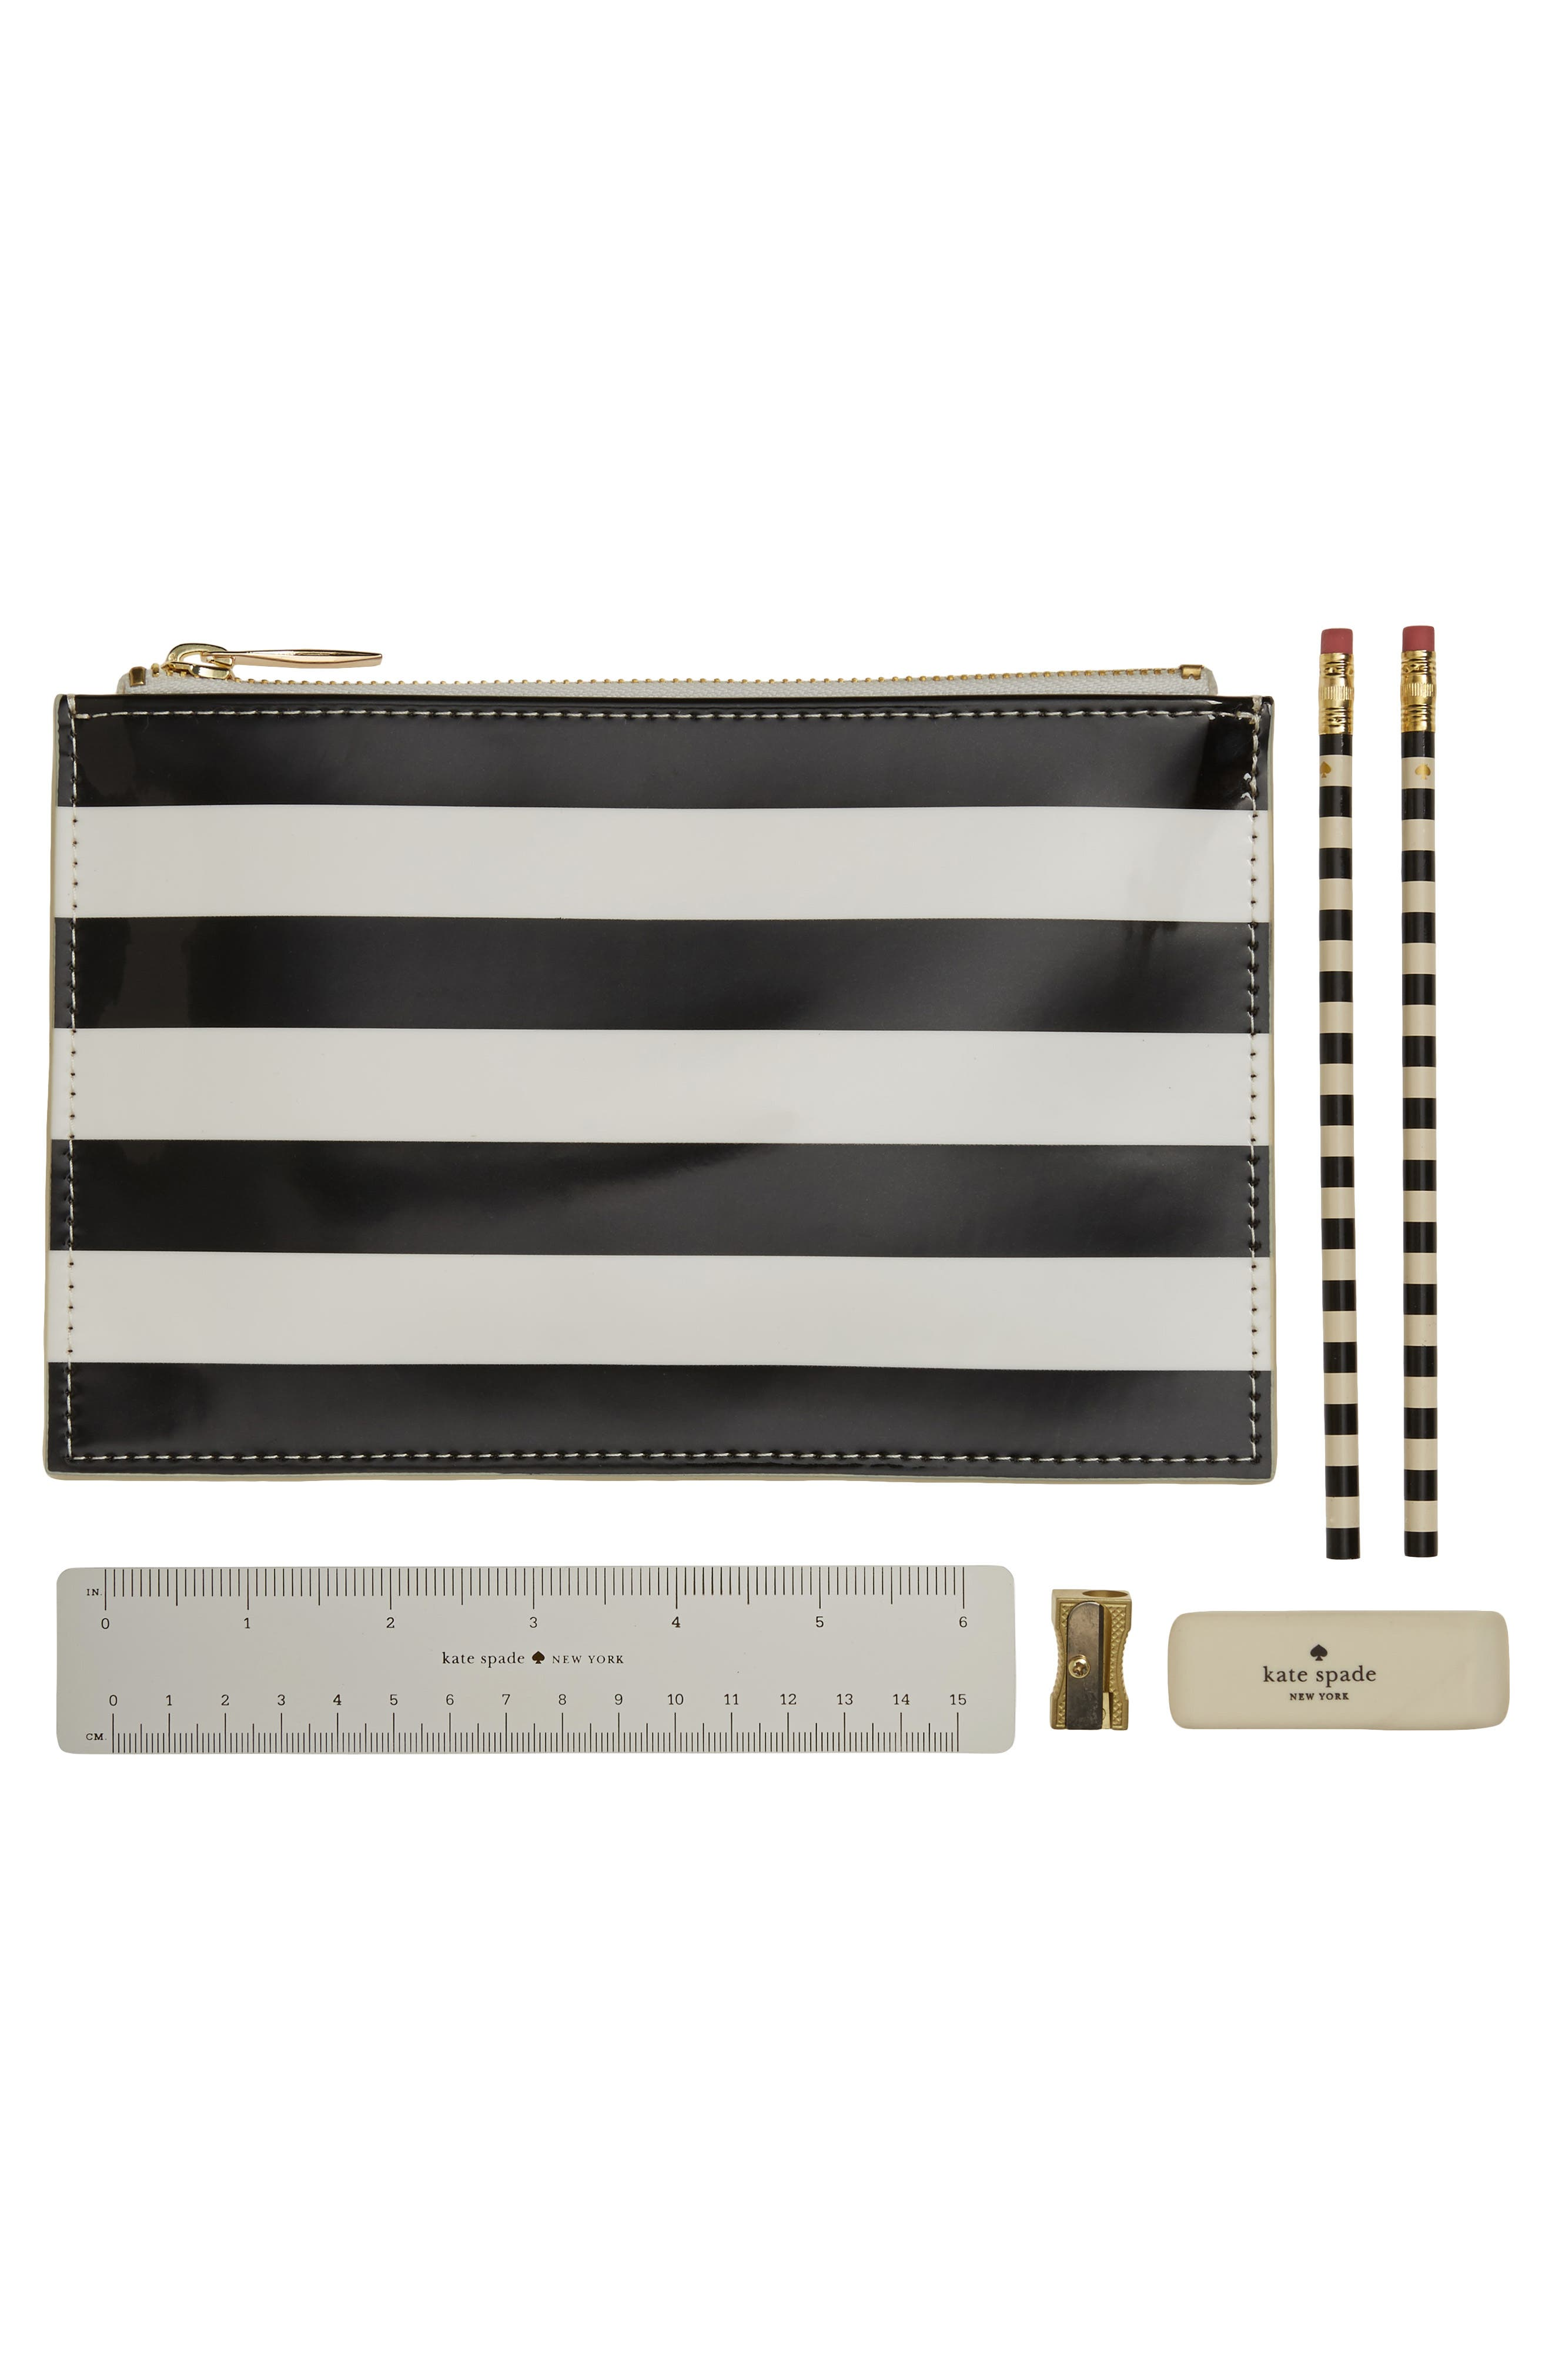 kate spade new york stripe pencil pouch set